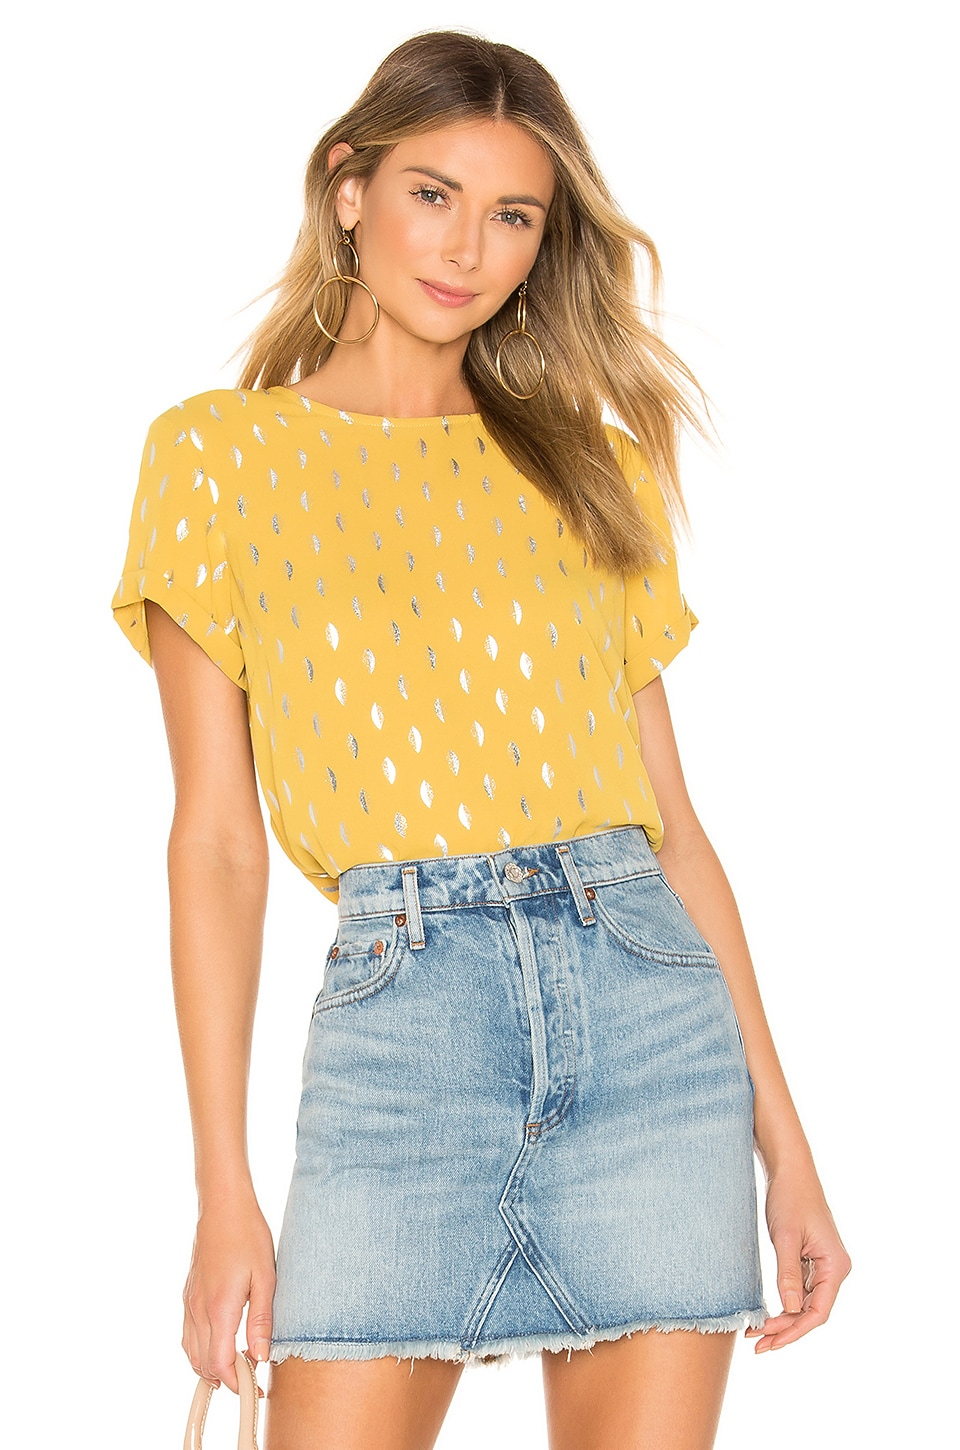 House of Harlow 1960 X REVOLVE Kira Top in Antique Yellow